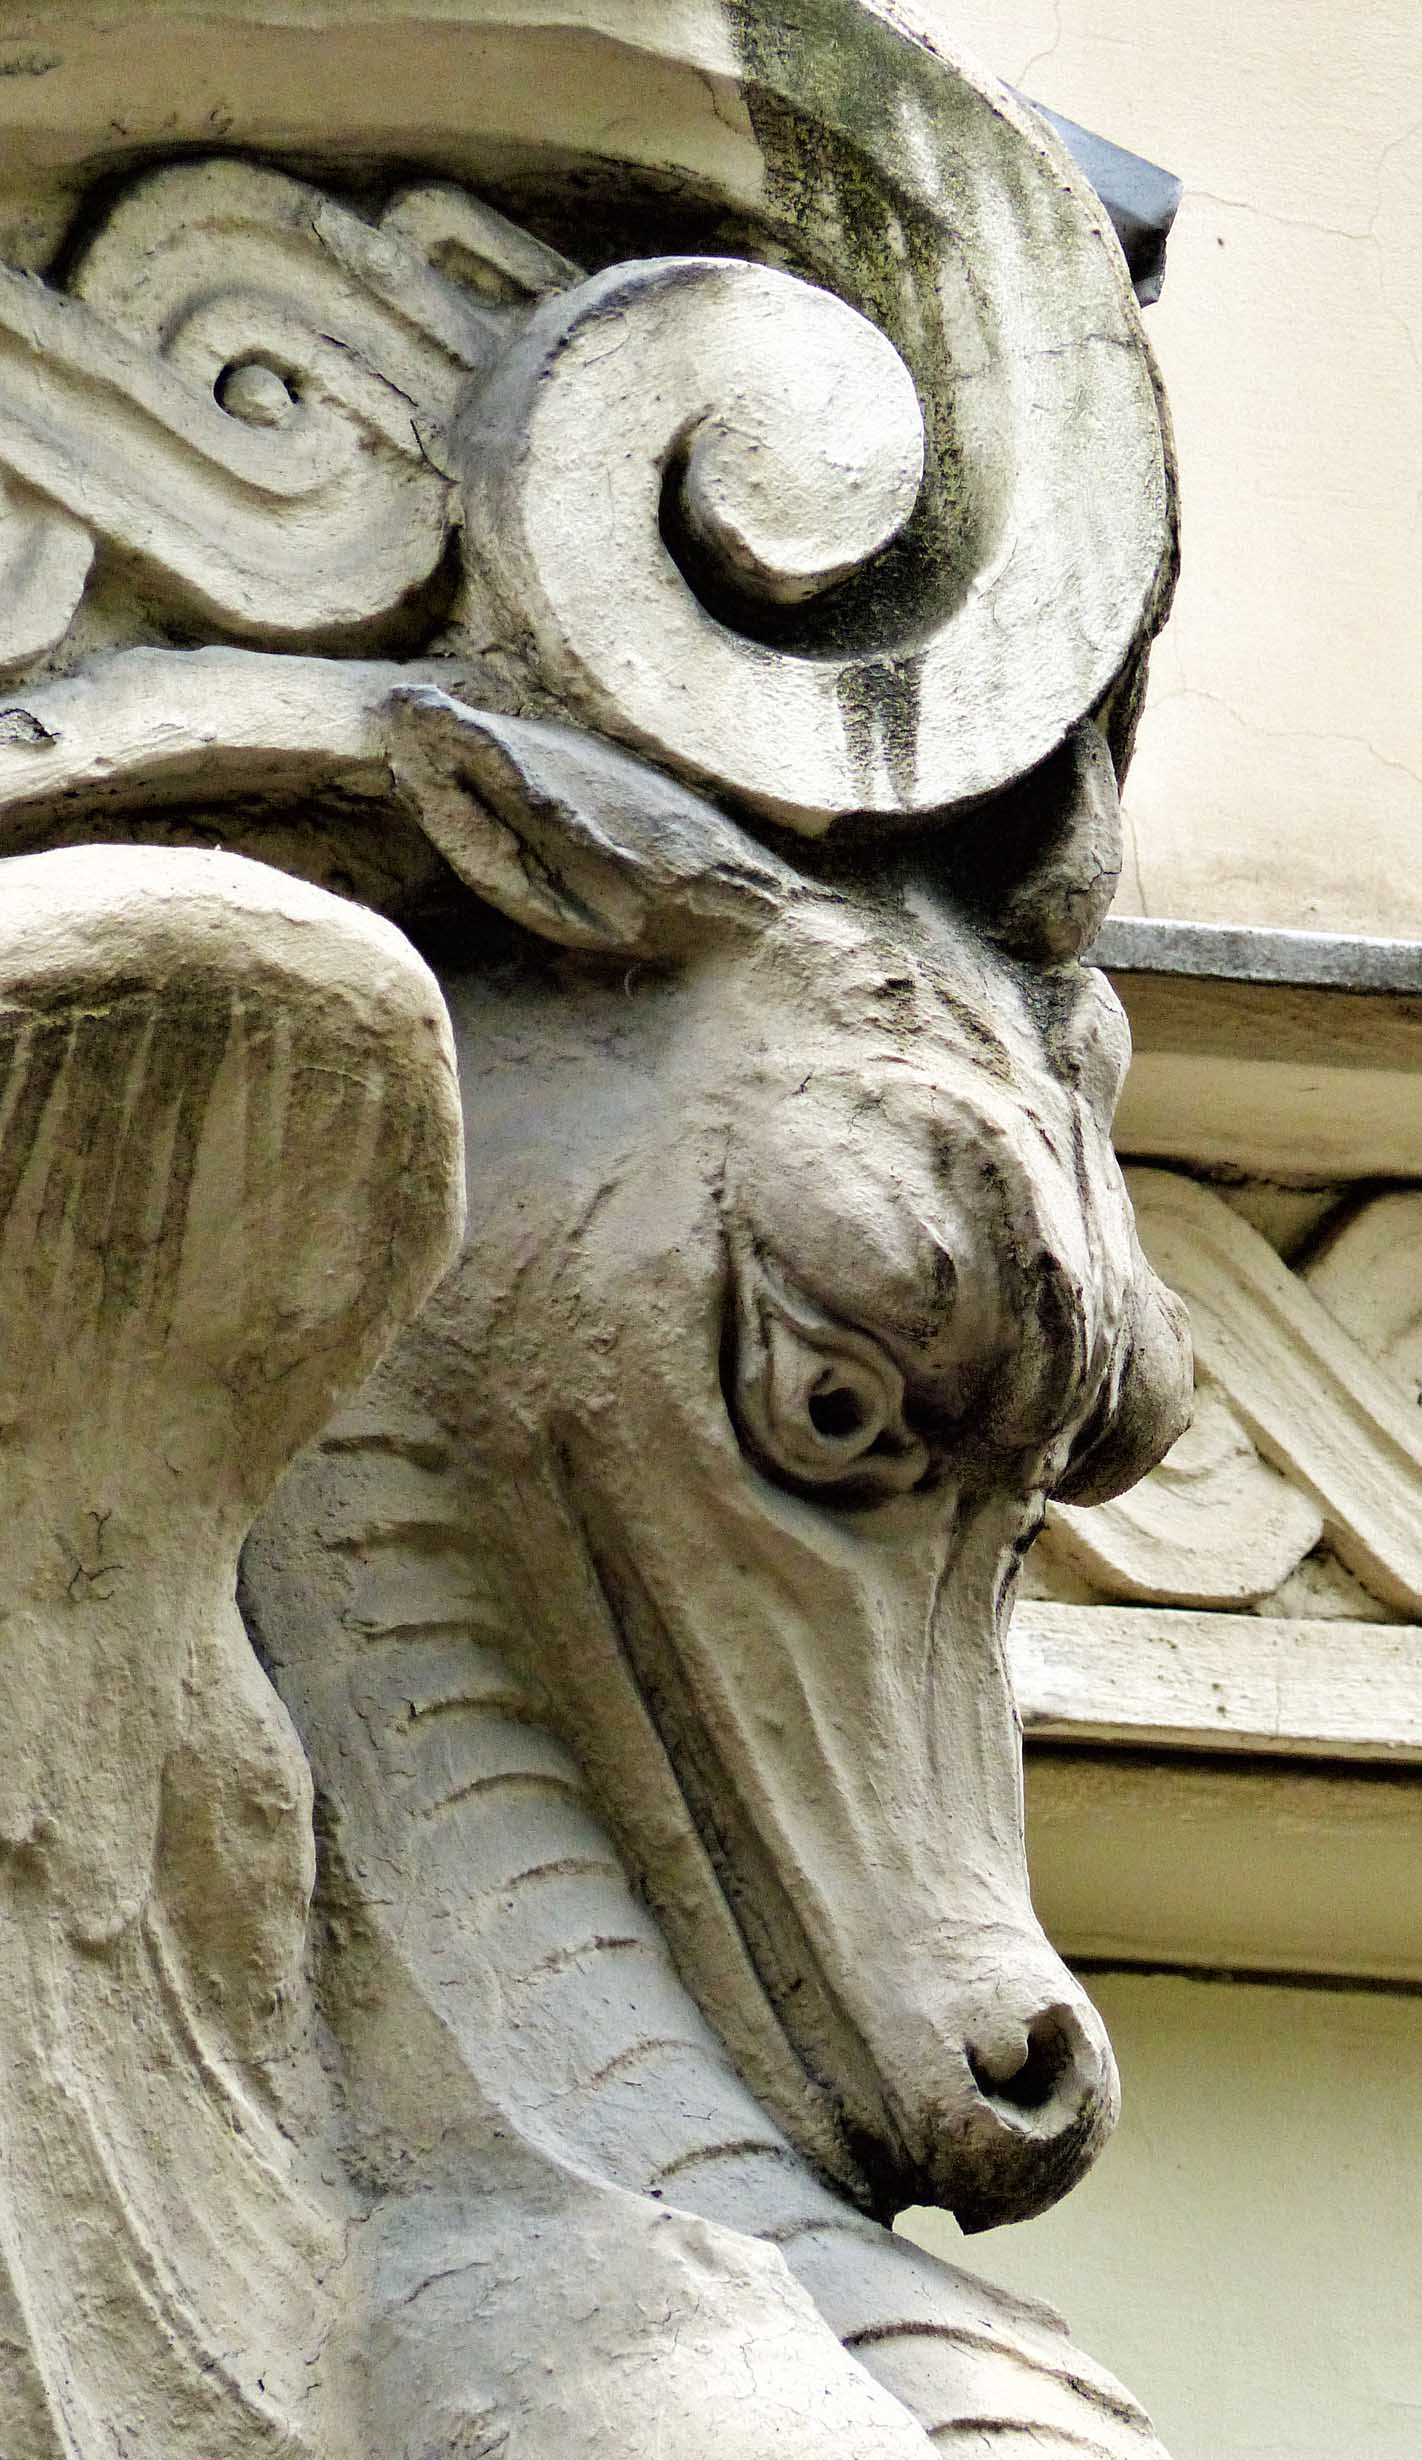 Stone dragon on the corner of a building